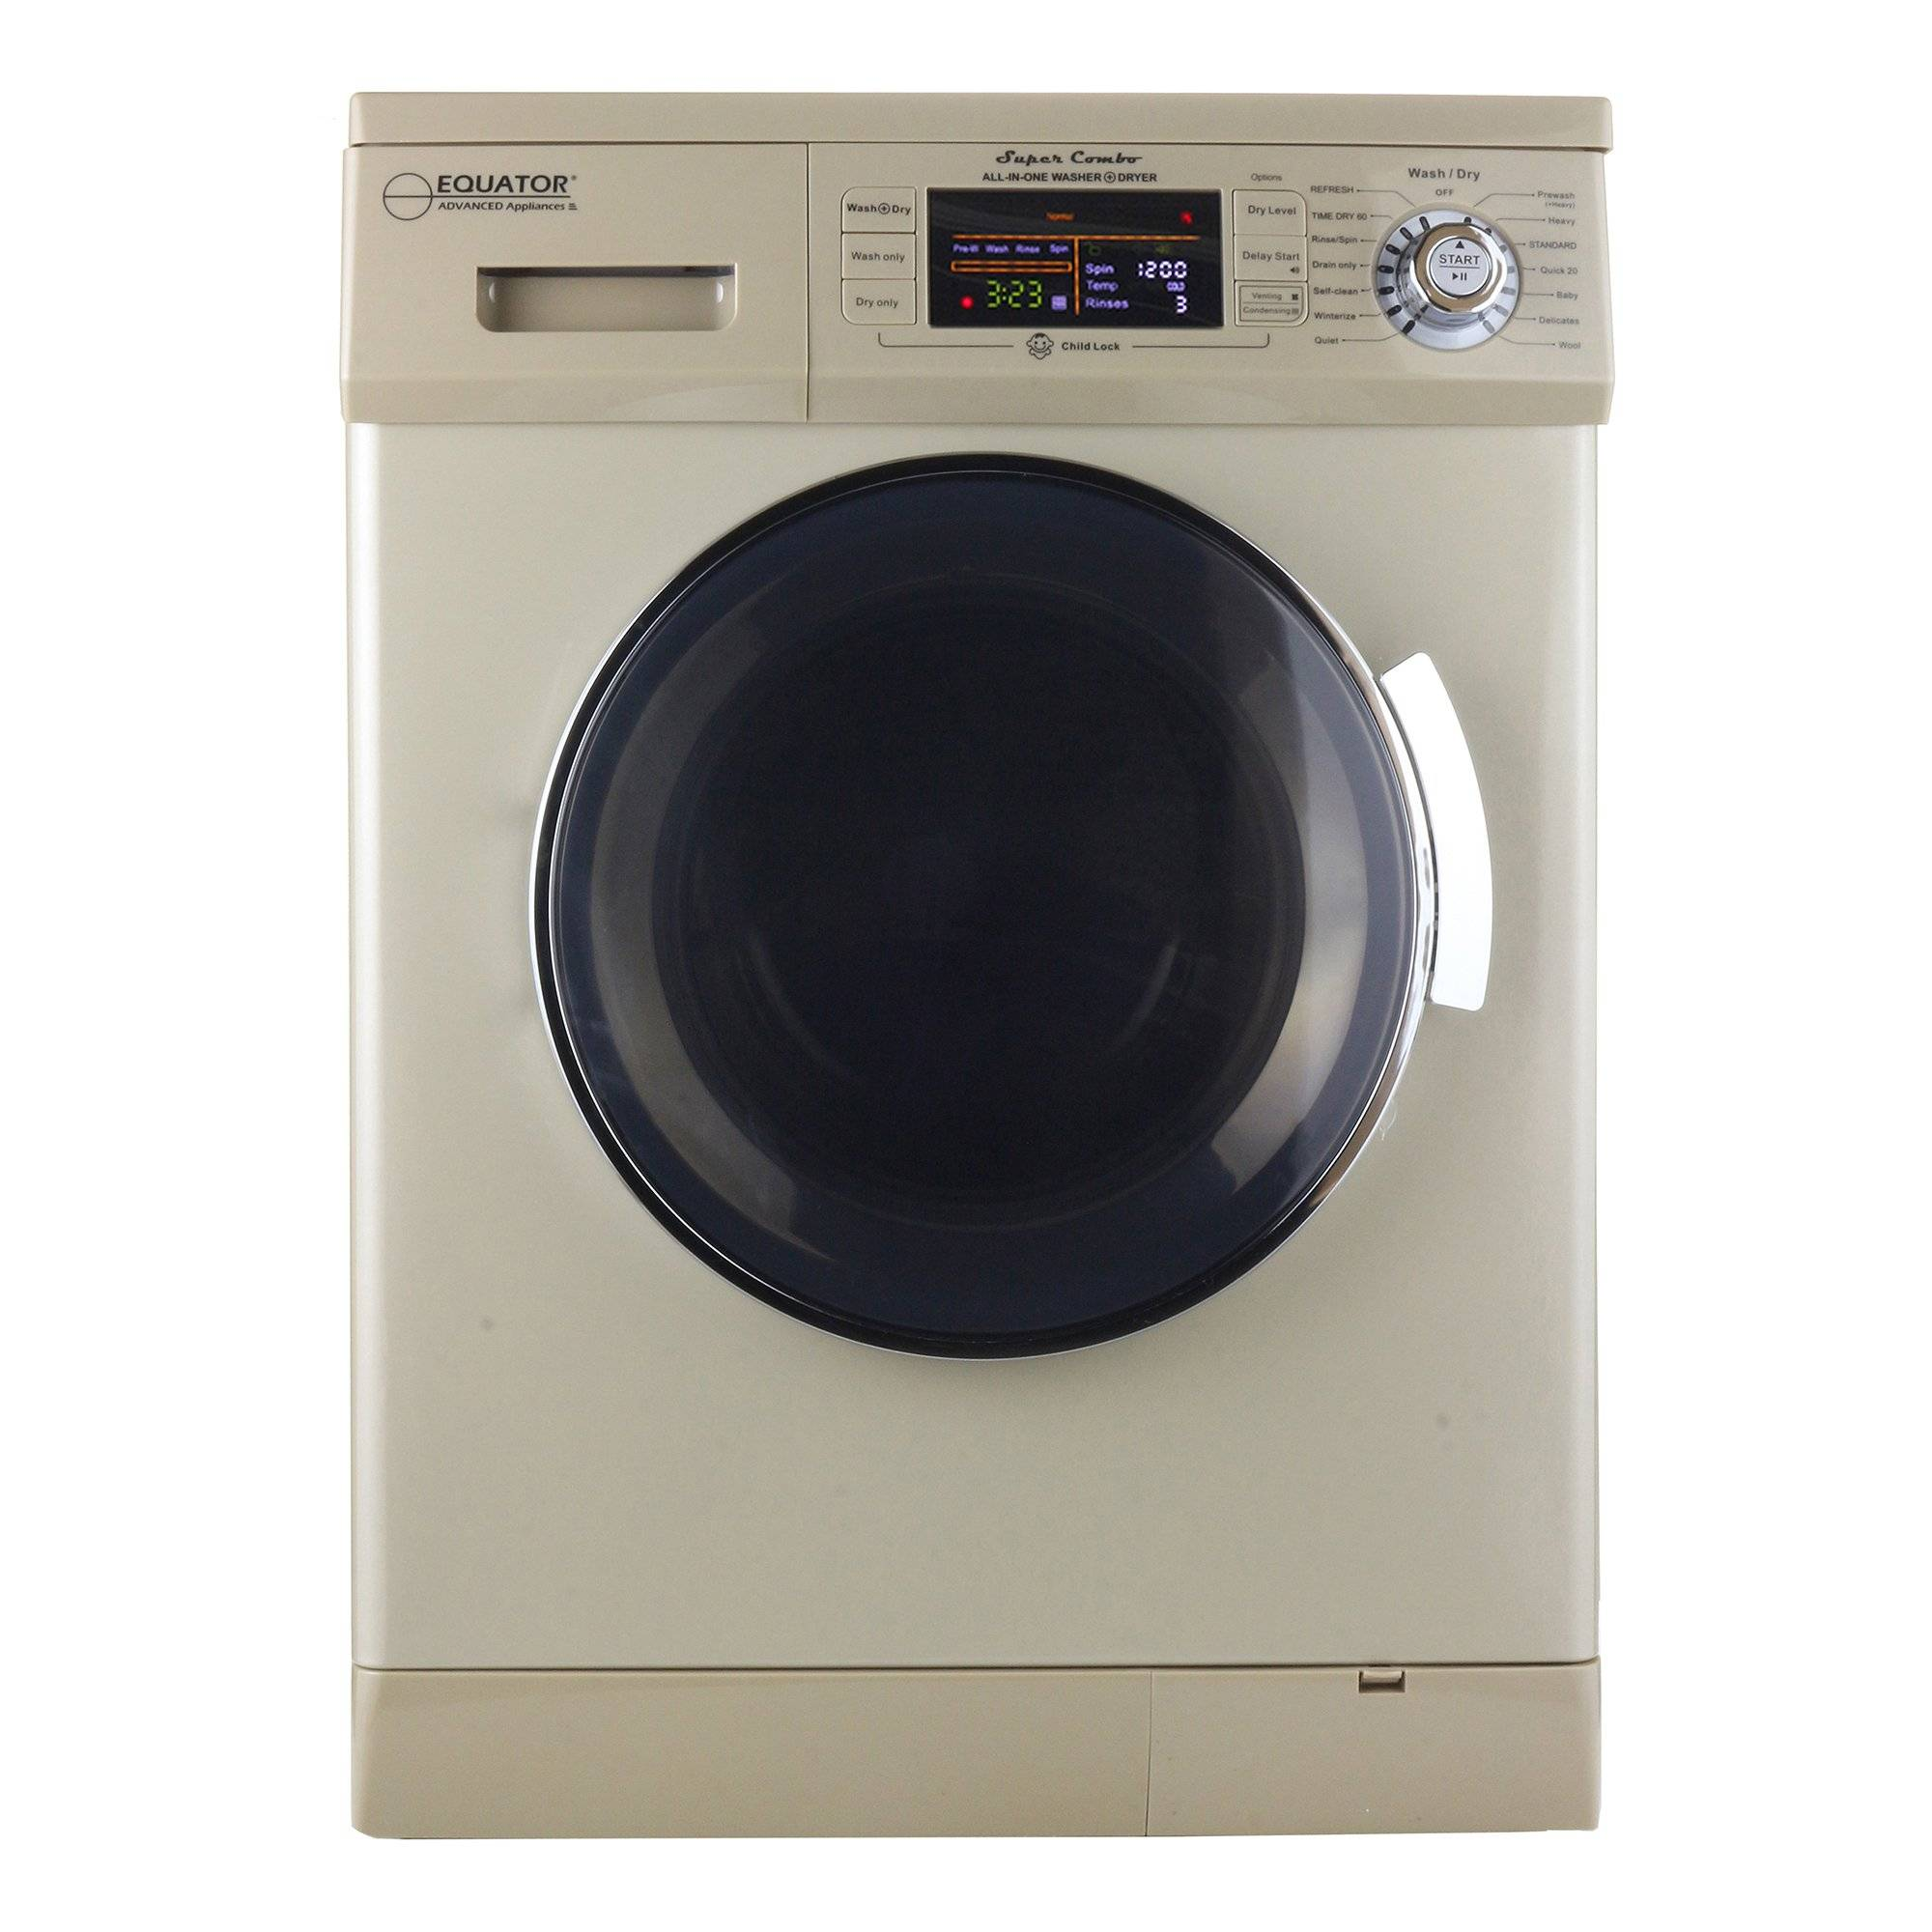 Equator Advanced Appliances Equator EZ4400N Washer/Dryer Combo, Champagne Gold